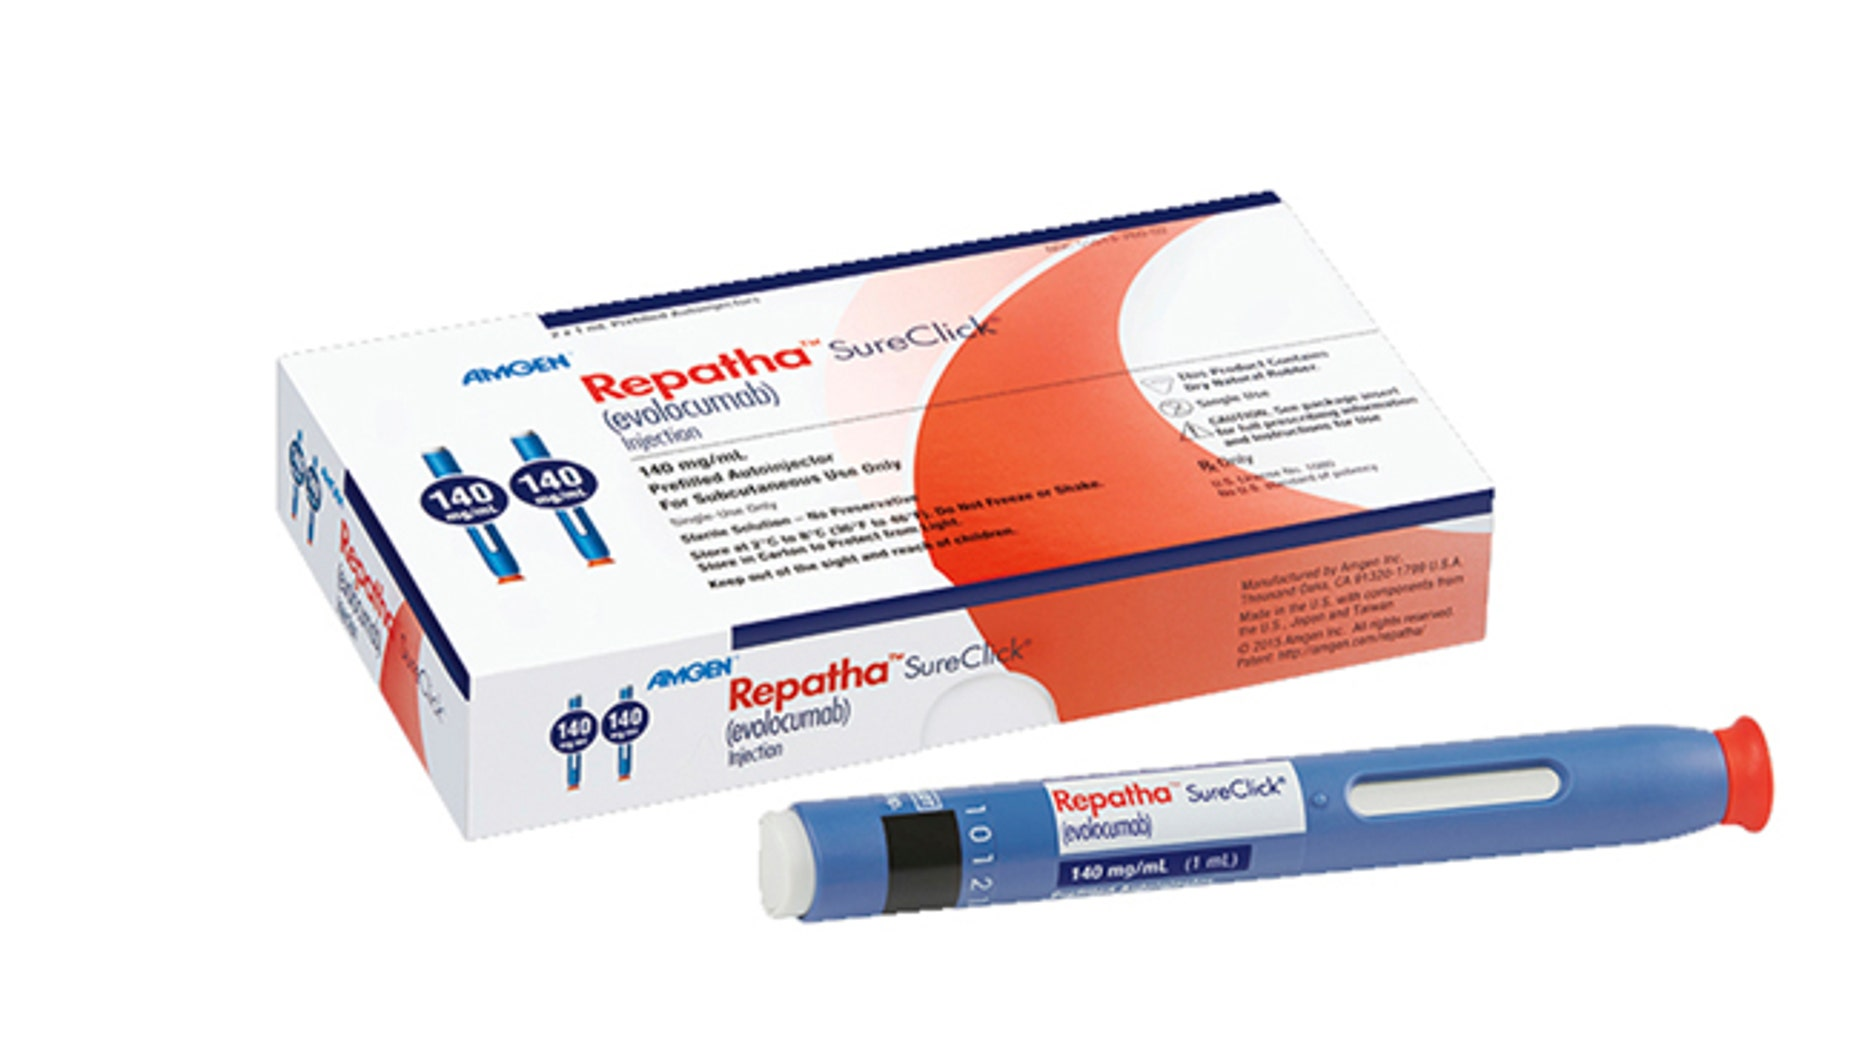 FILE - This undated image provided by Amgen Inc. shows the cholesterol-lowering drug Repatha. Contrary to some political claims, the FDA actually approved more drugs, including Repatha, and three months faster on average, than European regulators did over the last five years. Three researchers reviewed approvals in the U.S. and Europe and published their results Wednesday, April 5, 2017, in the New England Journal of Medicine. (Robert Dawson/Amgen via AP, File)